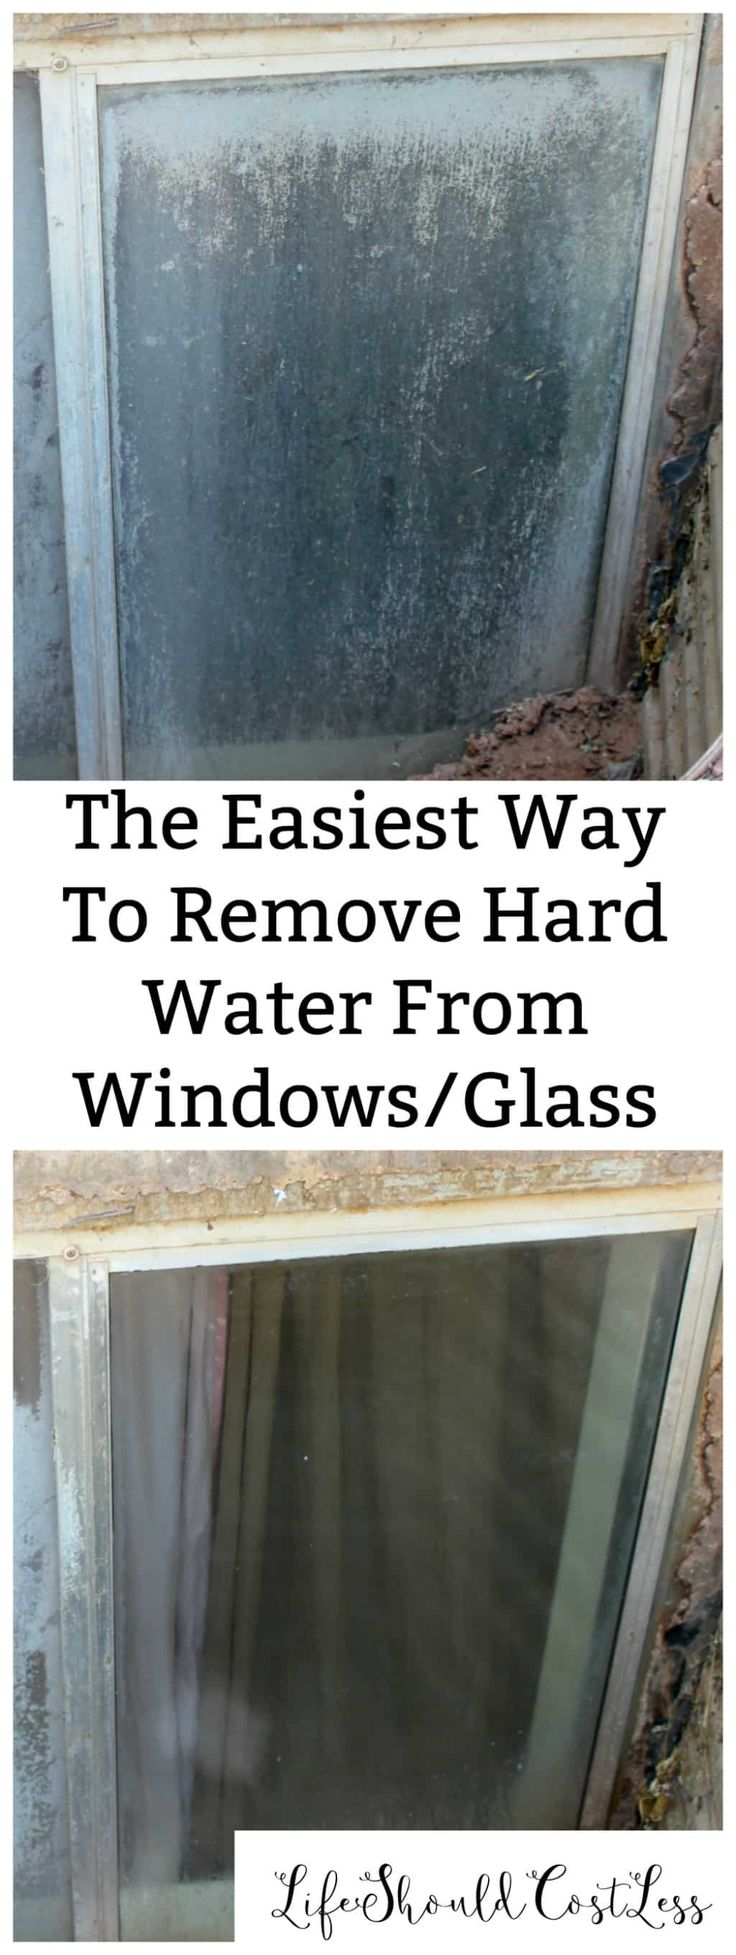 The Easiest Way To Remove Hard Water From Windows/Glass